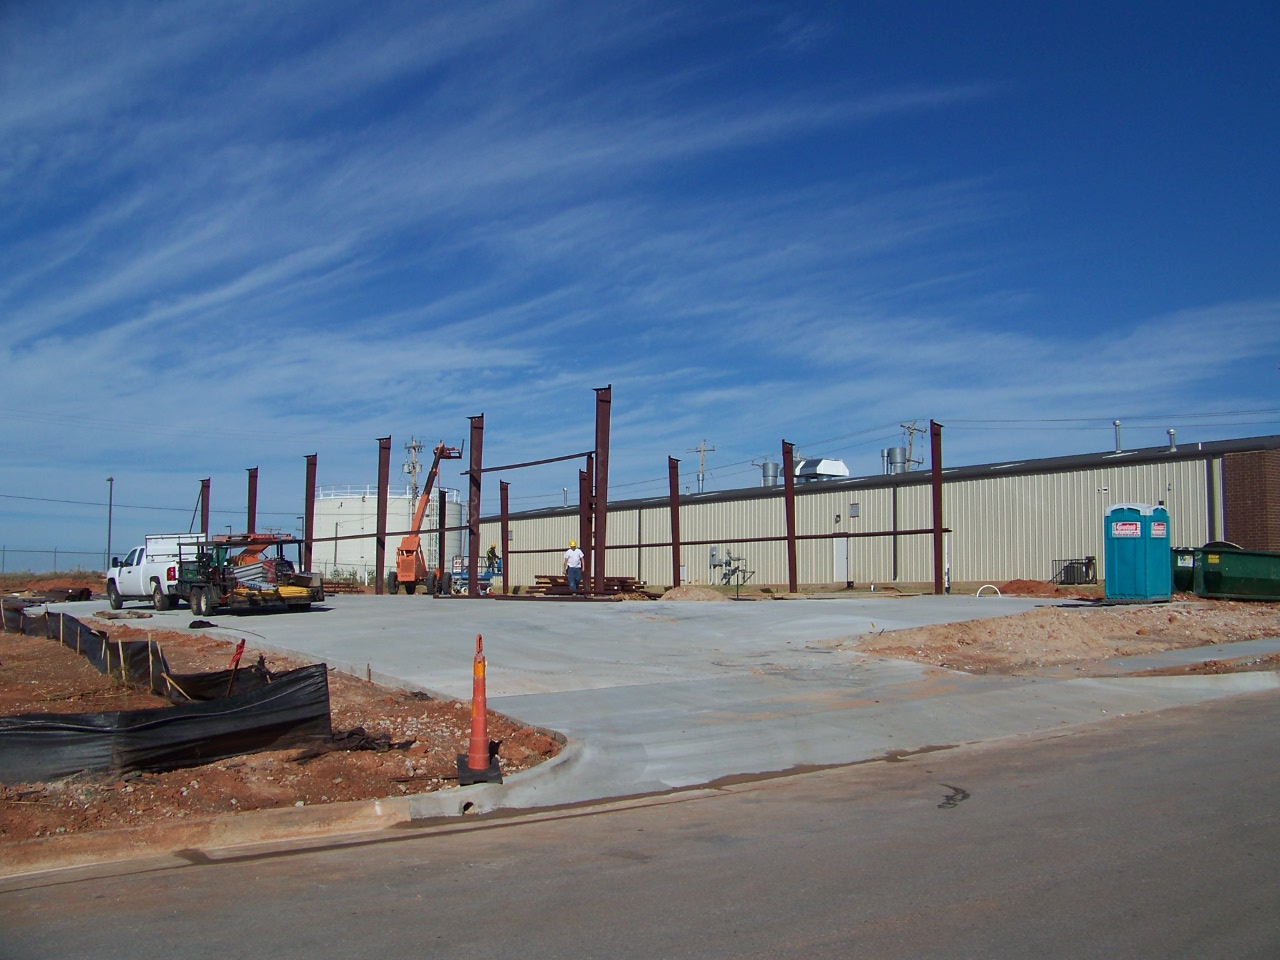 Industrial Warehouse Construction Steel Oklahoma City OKC